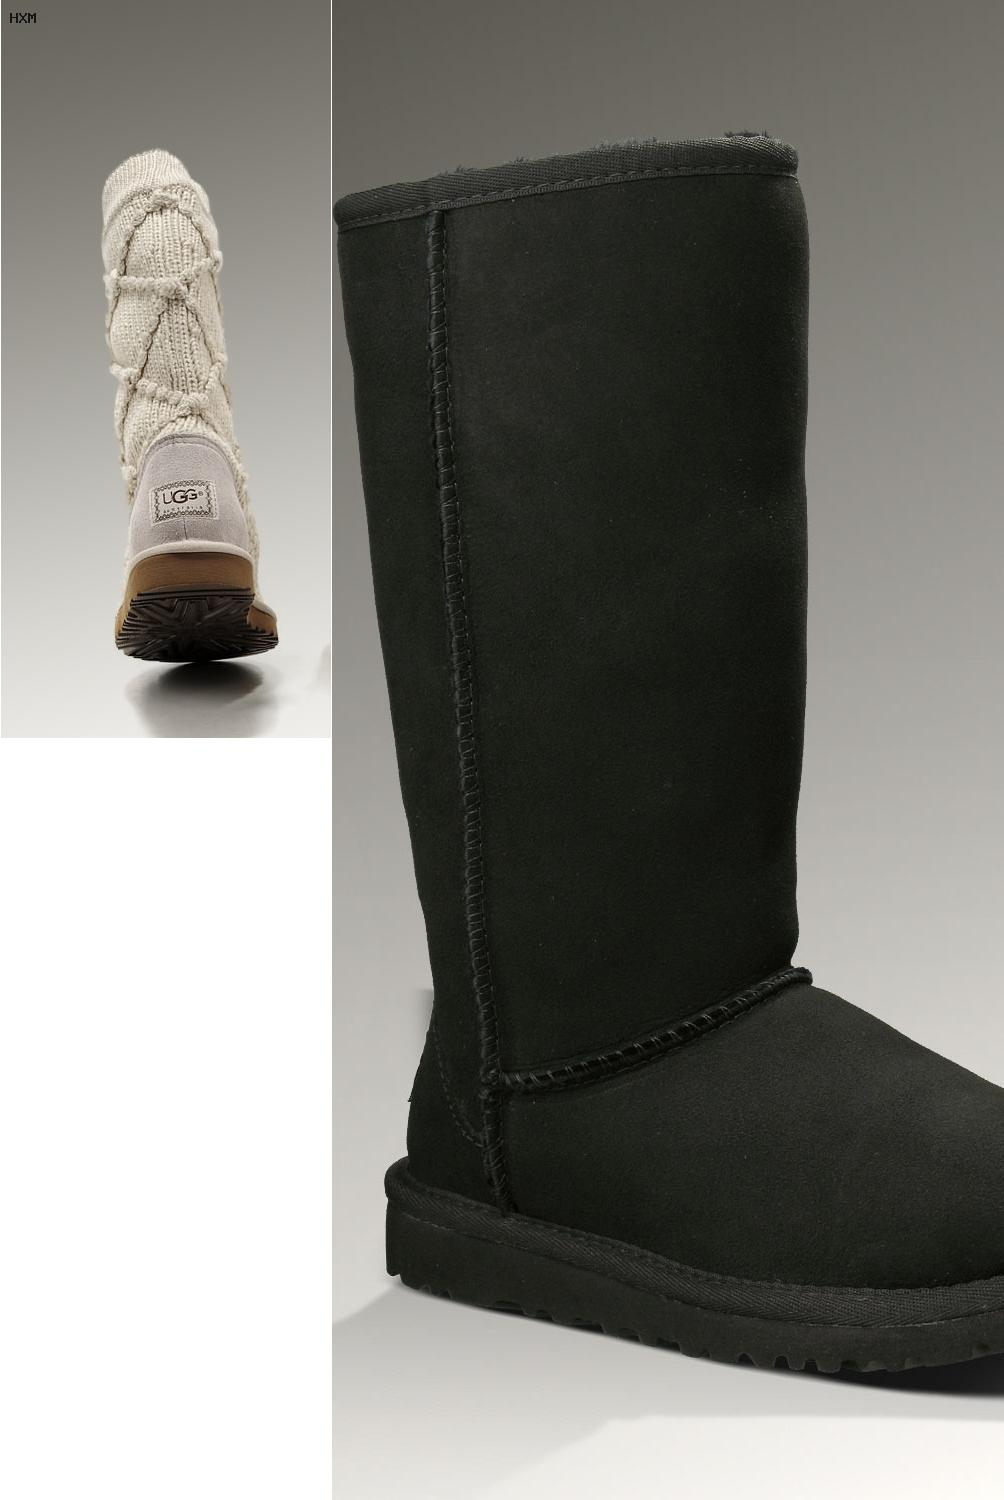 Boots Comment Taille Ugg Comment Taille qqCxUP6w